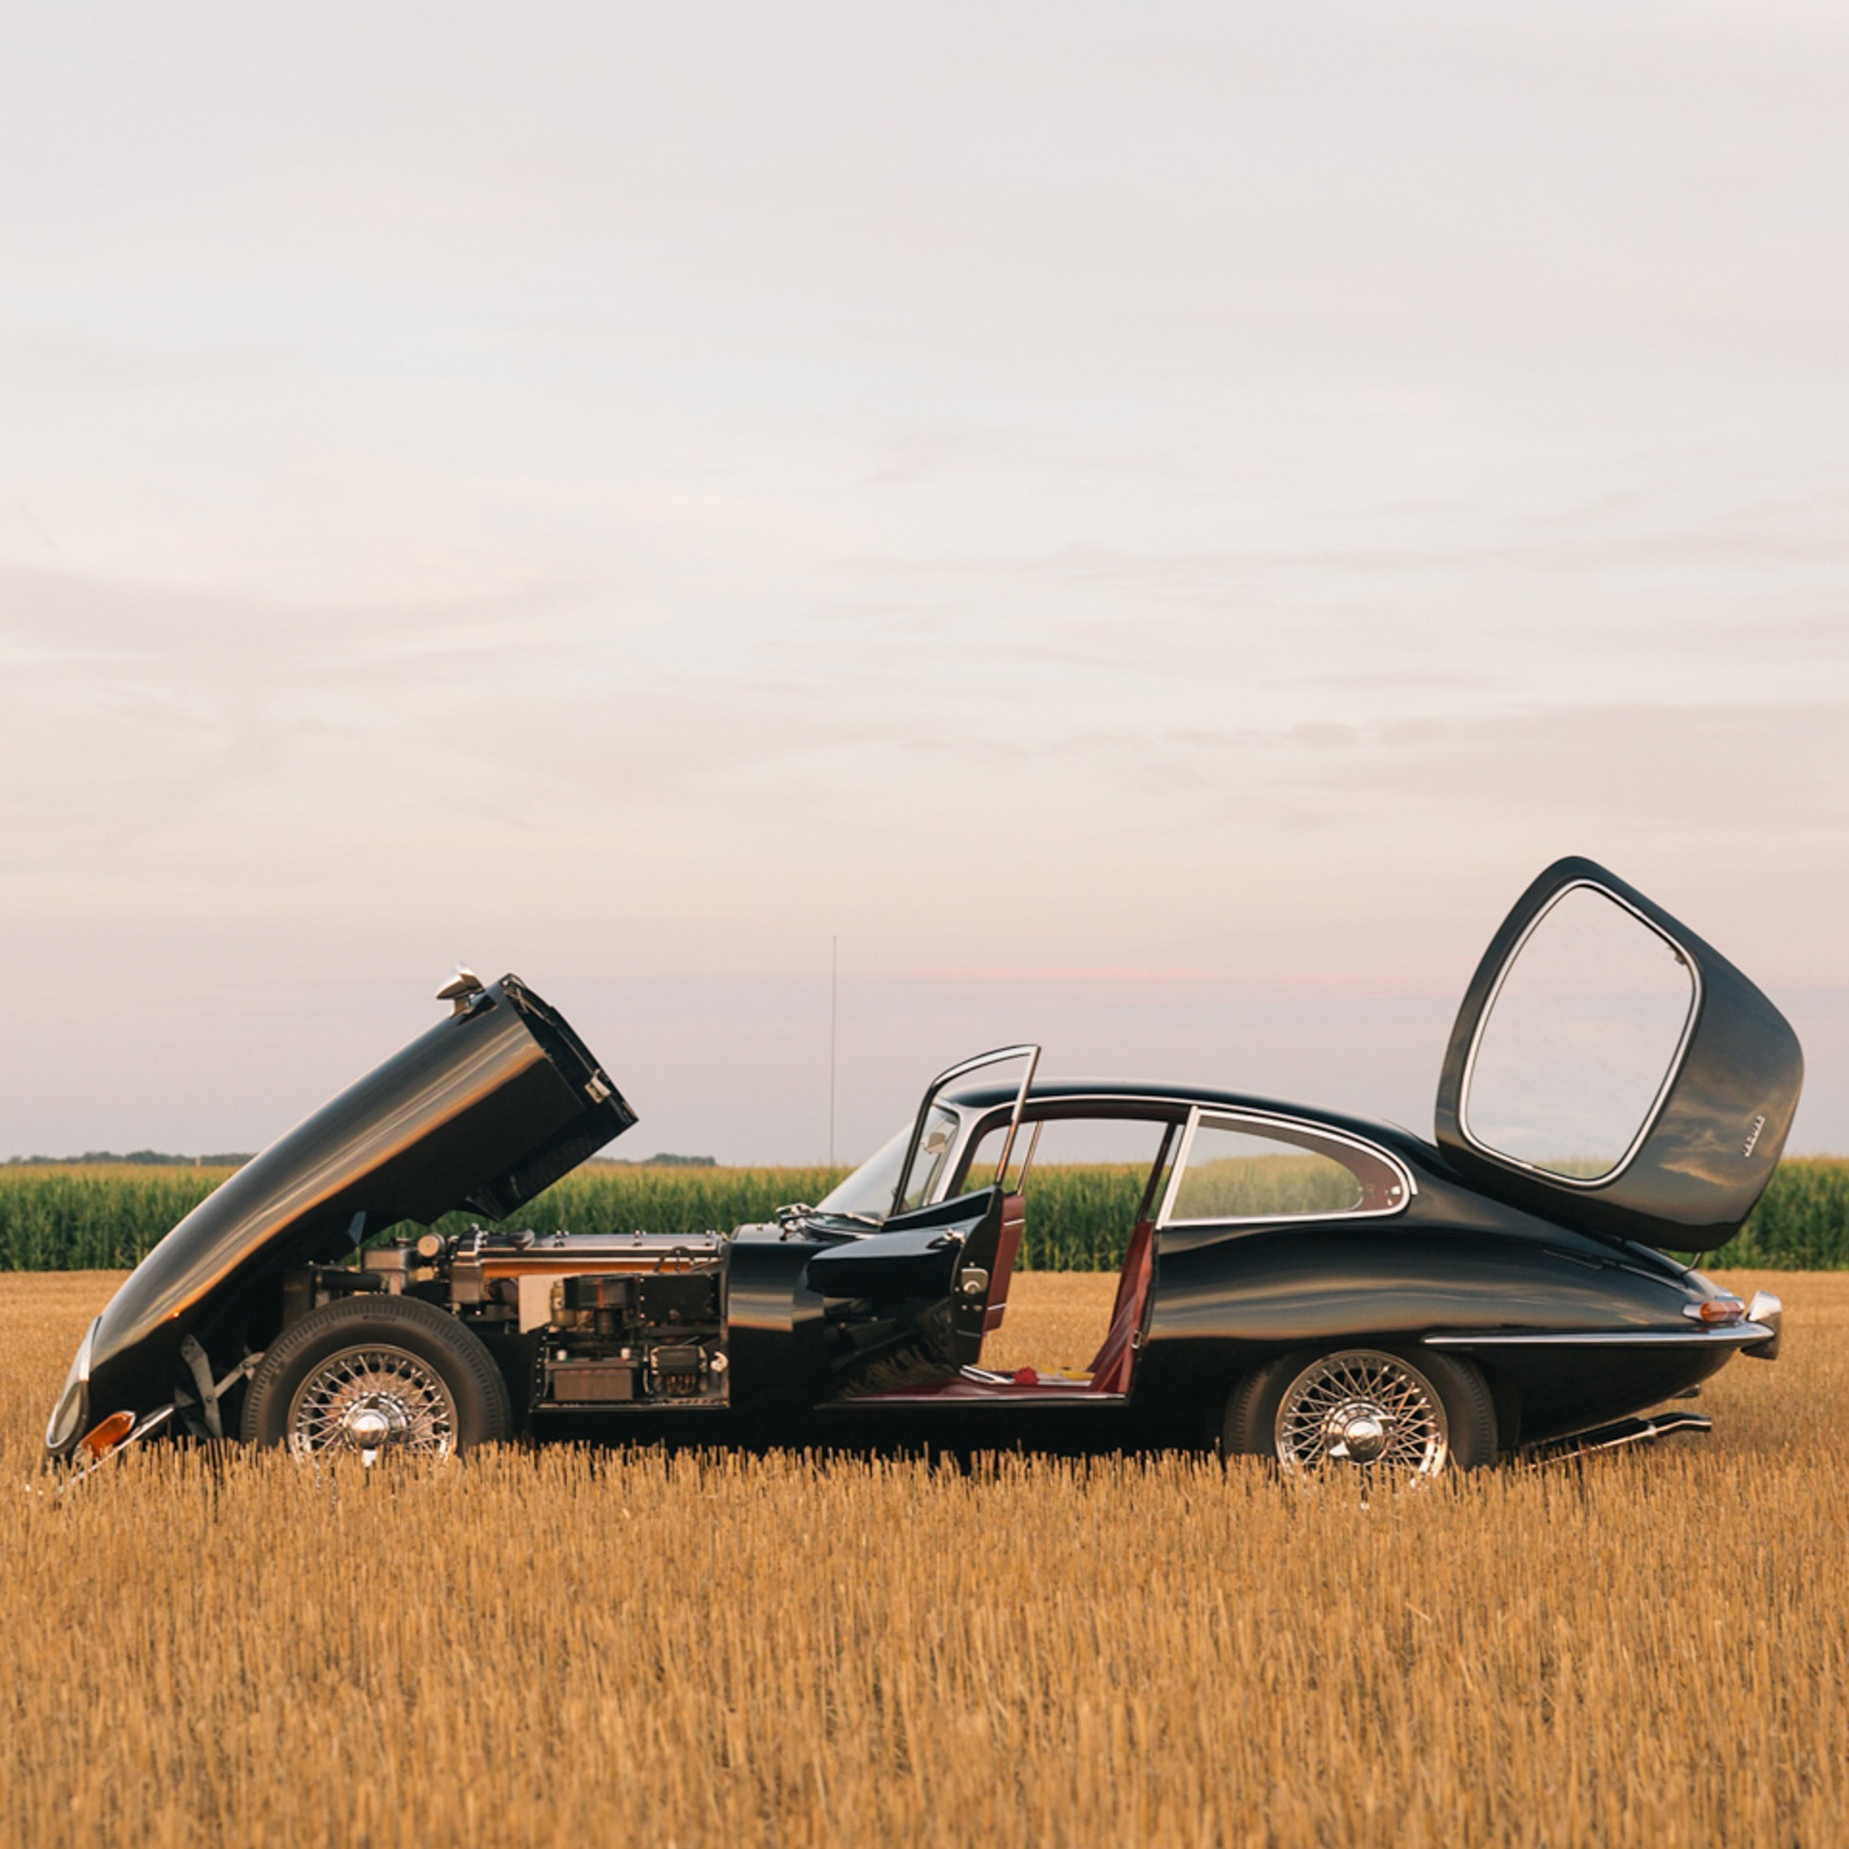 This Is The Story Of My Father's Hunt For Just The Right E-Type Jaguar